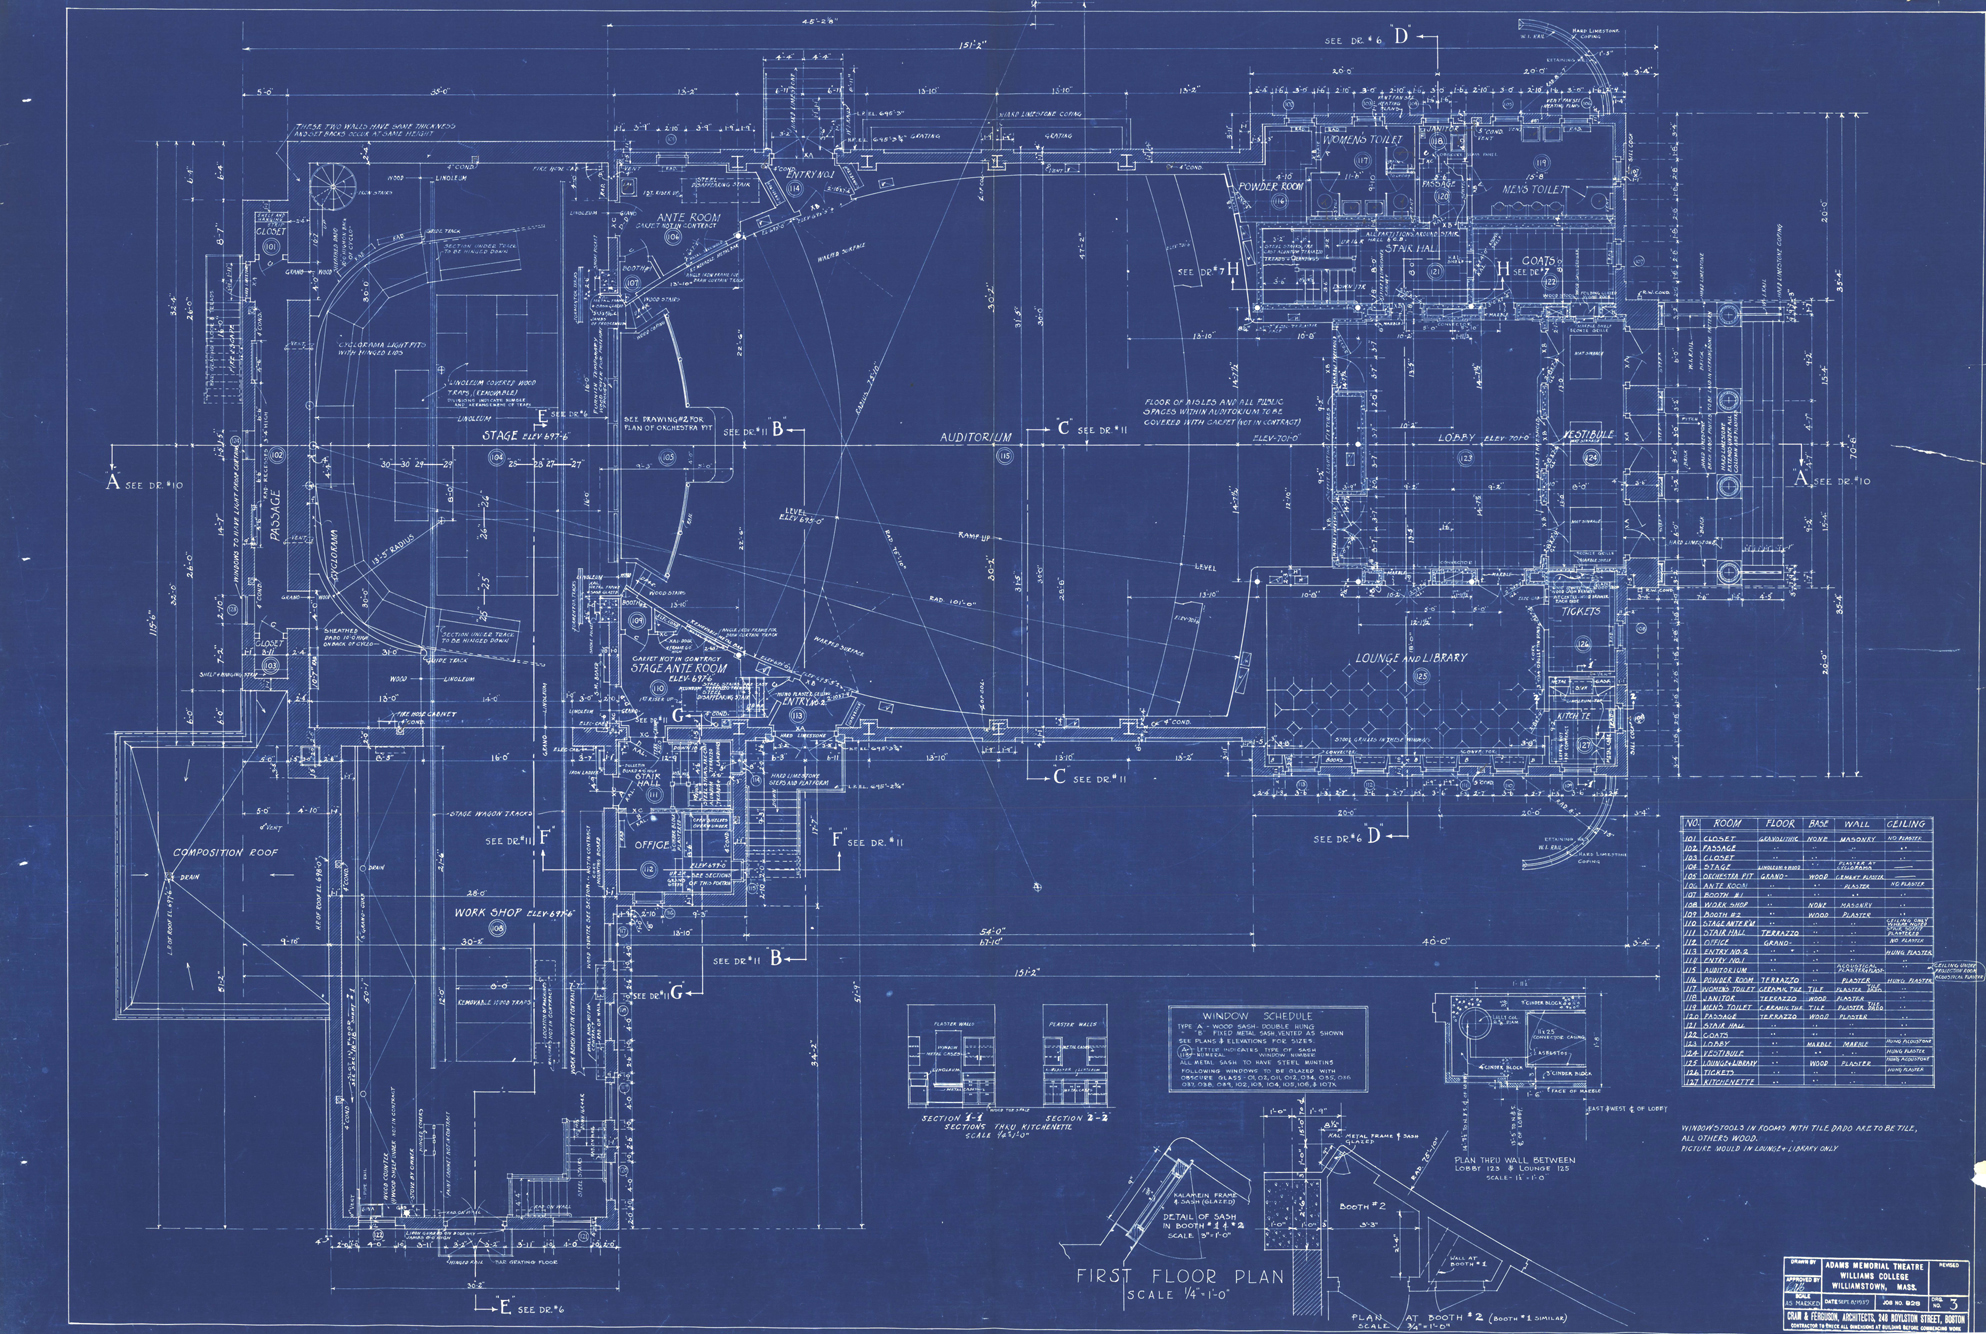 Blueprints for Print architectural plans